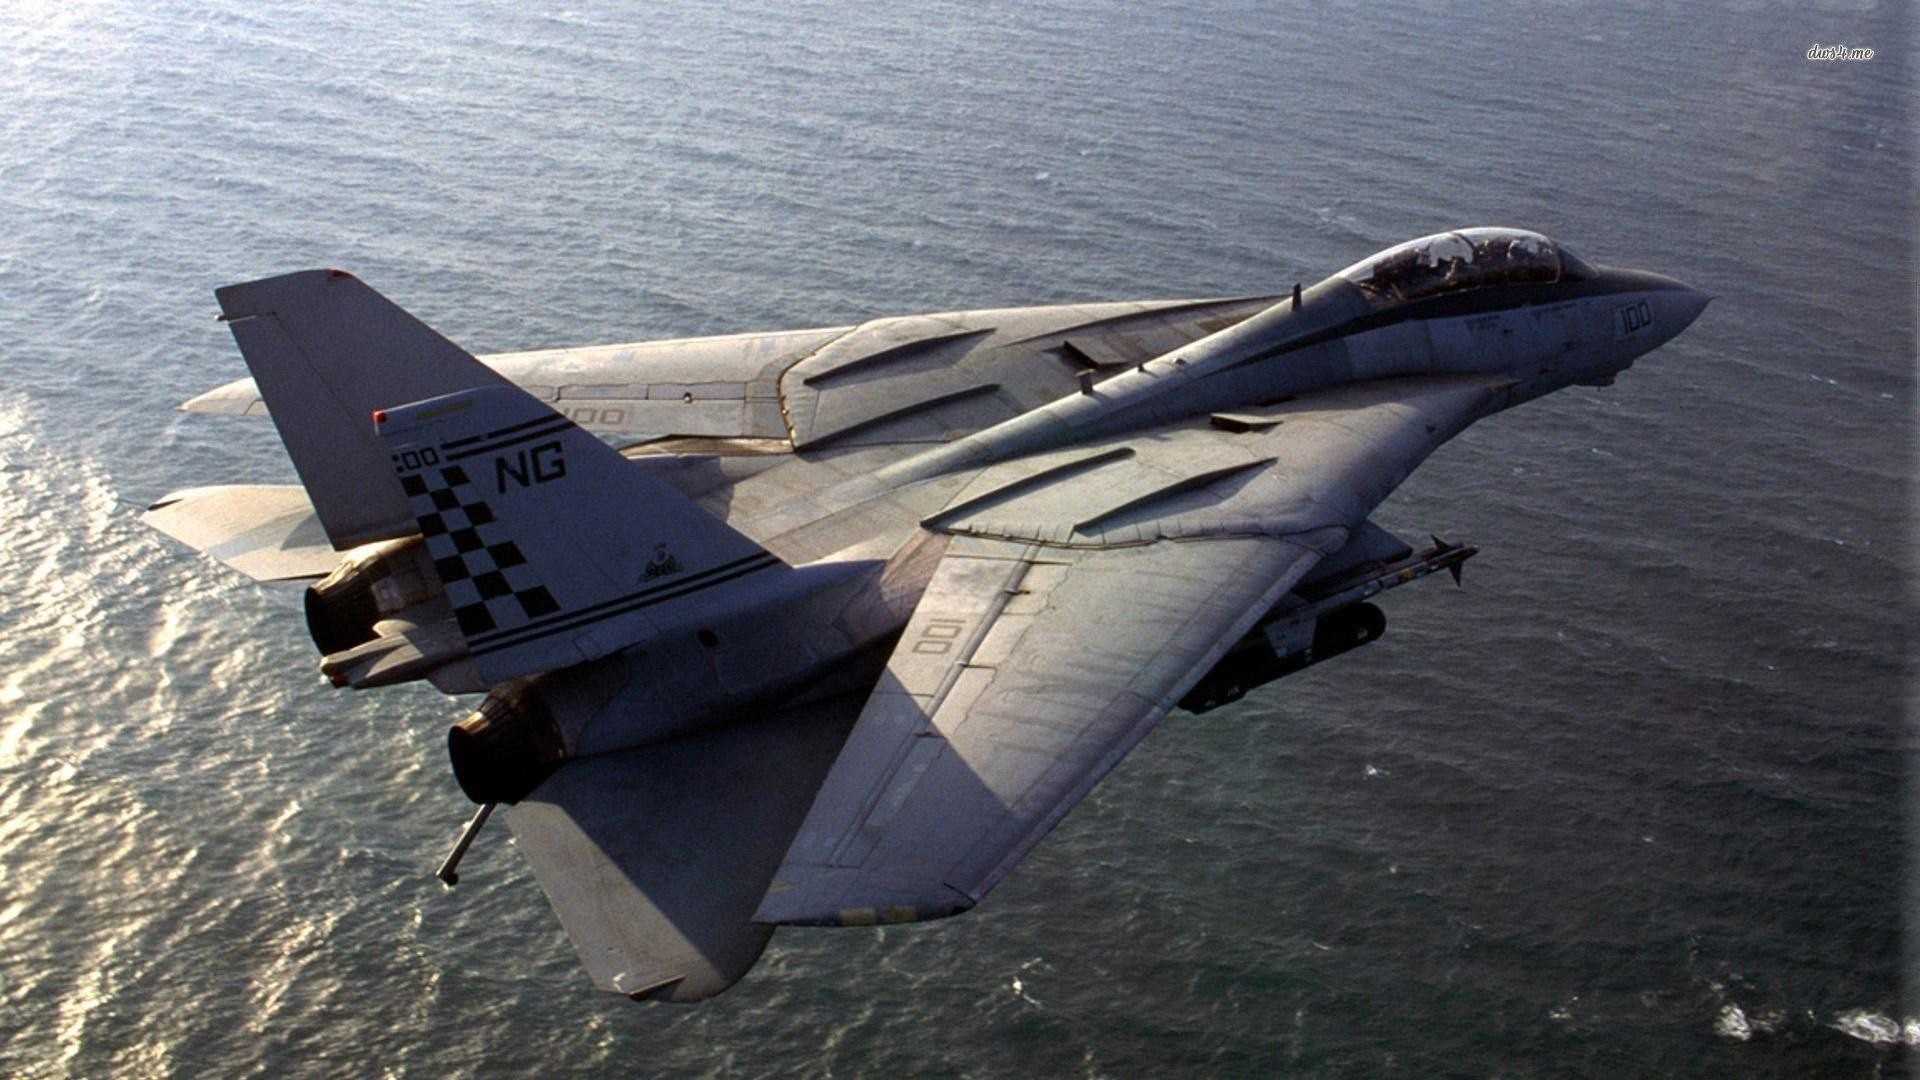 1920x1080  Grumman F-14 Tomcat Wallpapers 1 - 1920 X 1080